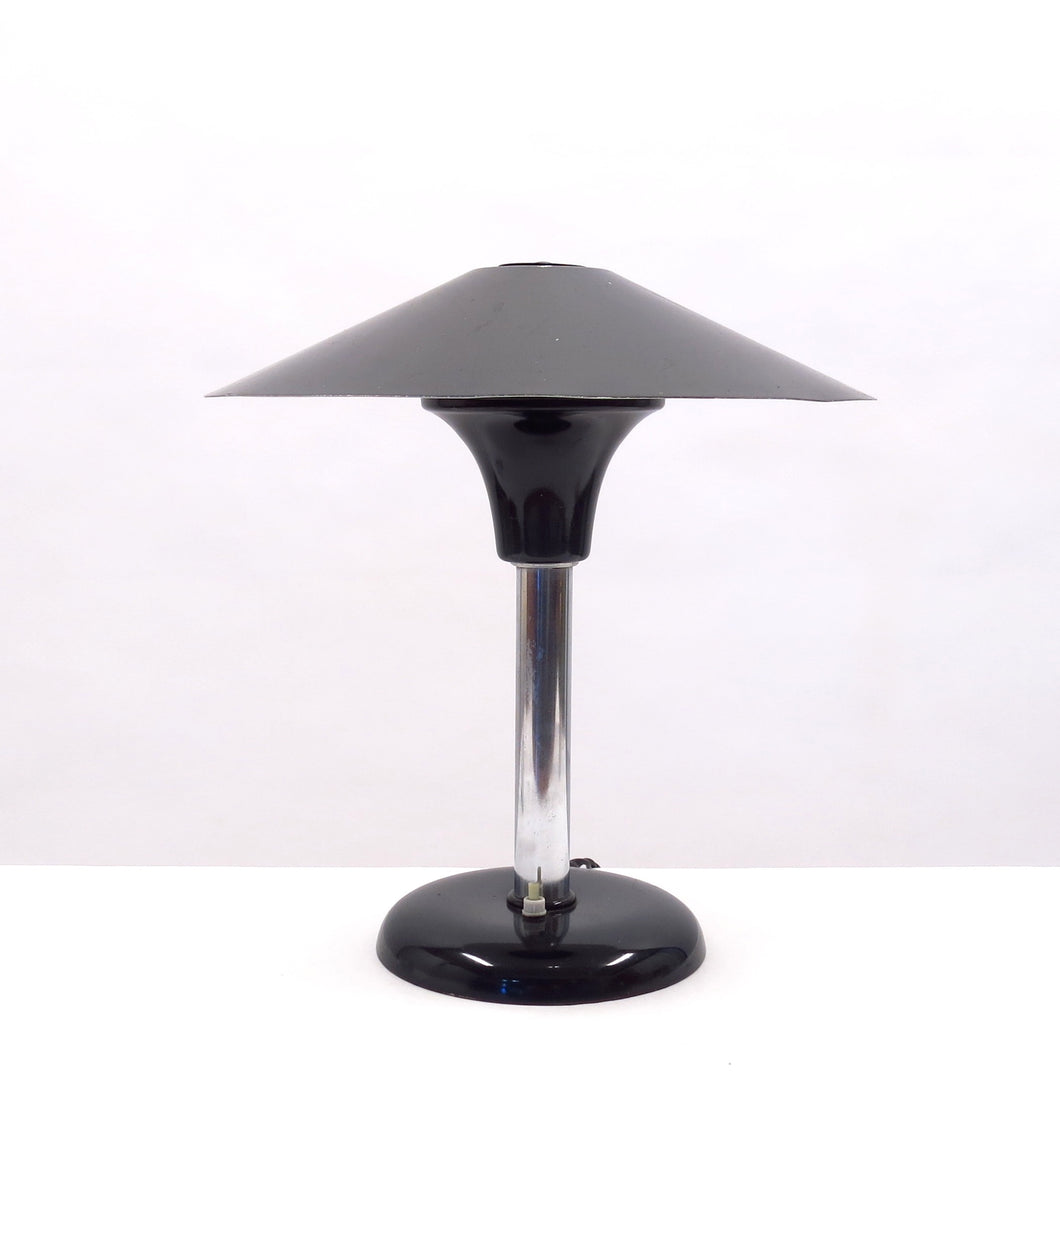 Table Lamp by Max Schumacher for Werner Schröder, 1930s